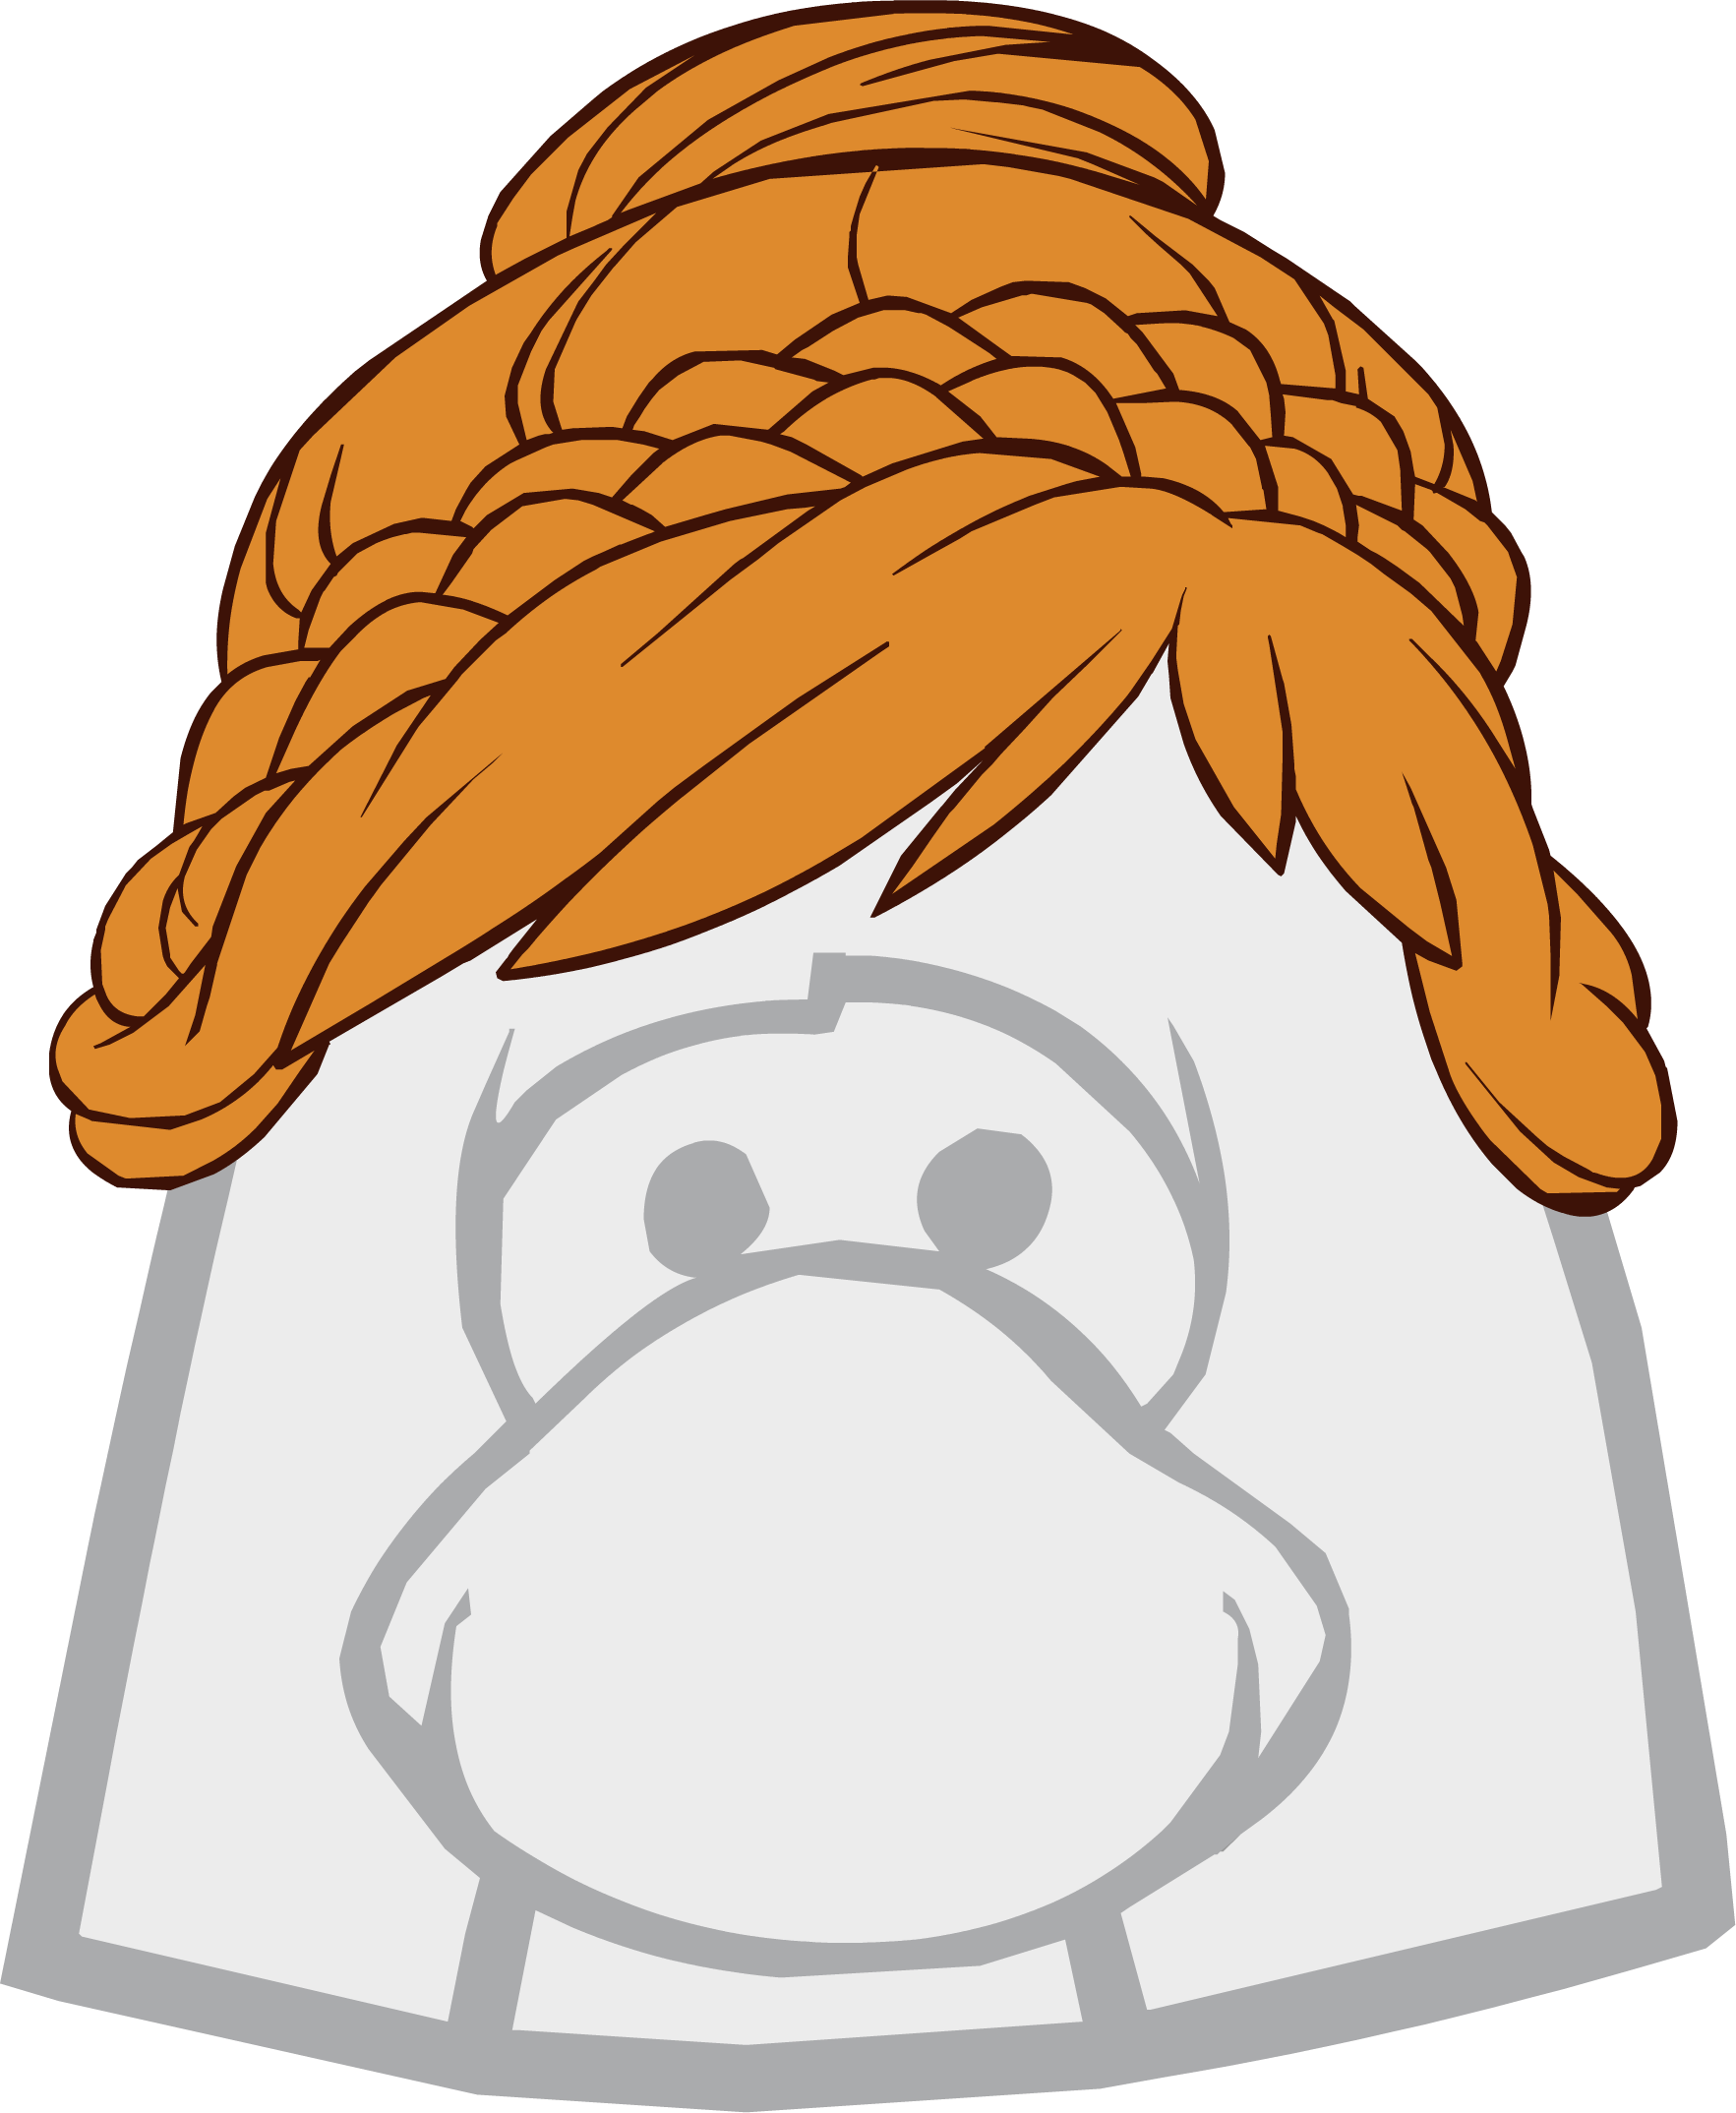 the spring bun club penguin wiki fandom powered by wikia